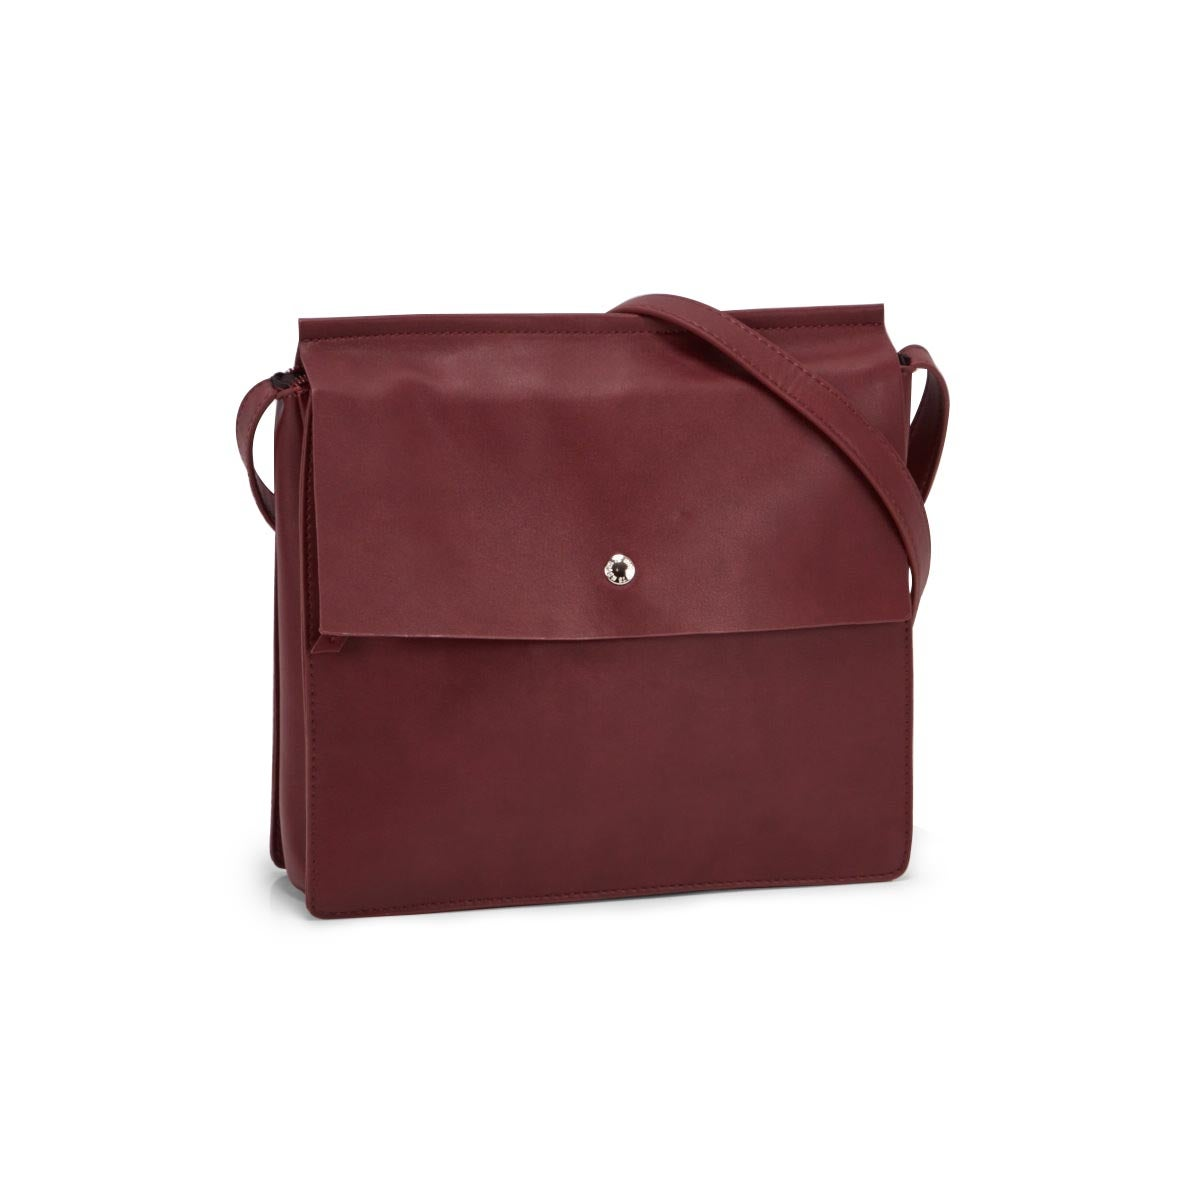 Lds Roots73 burgundy flapover crossbody